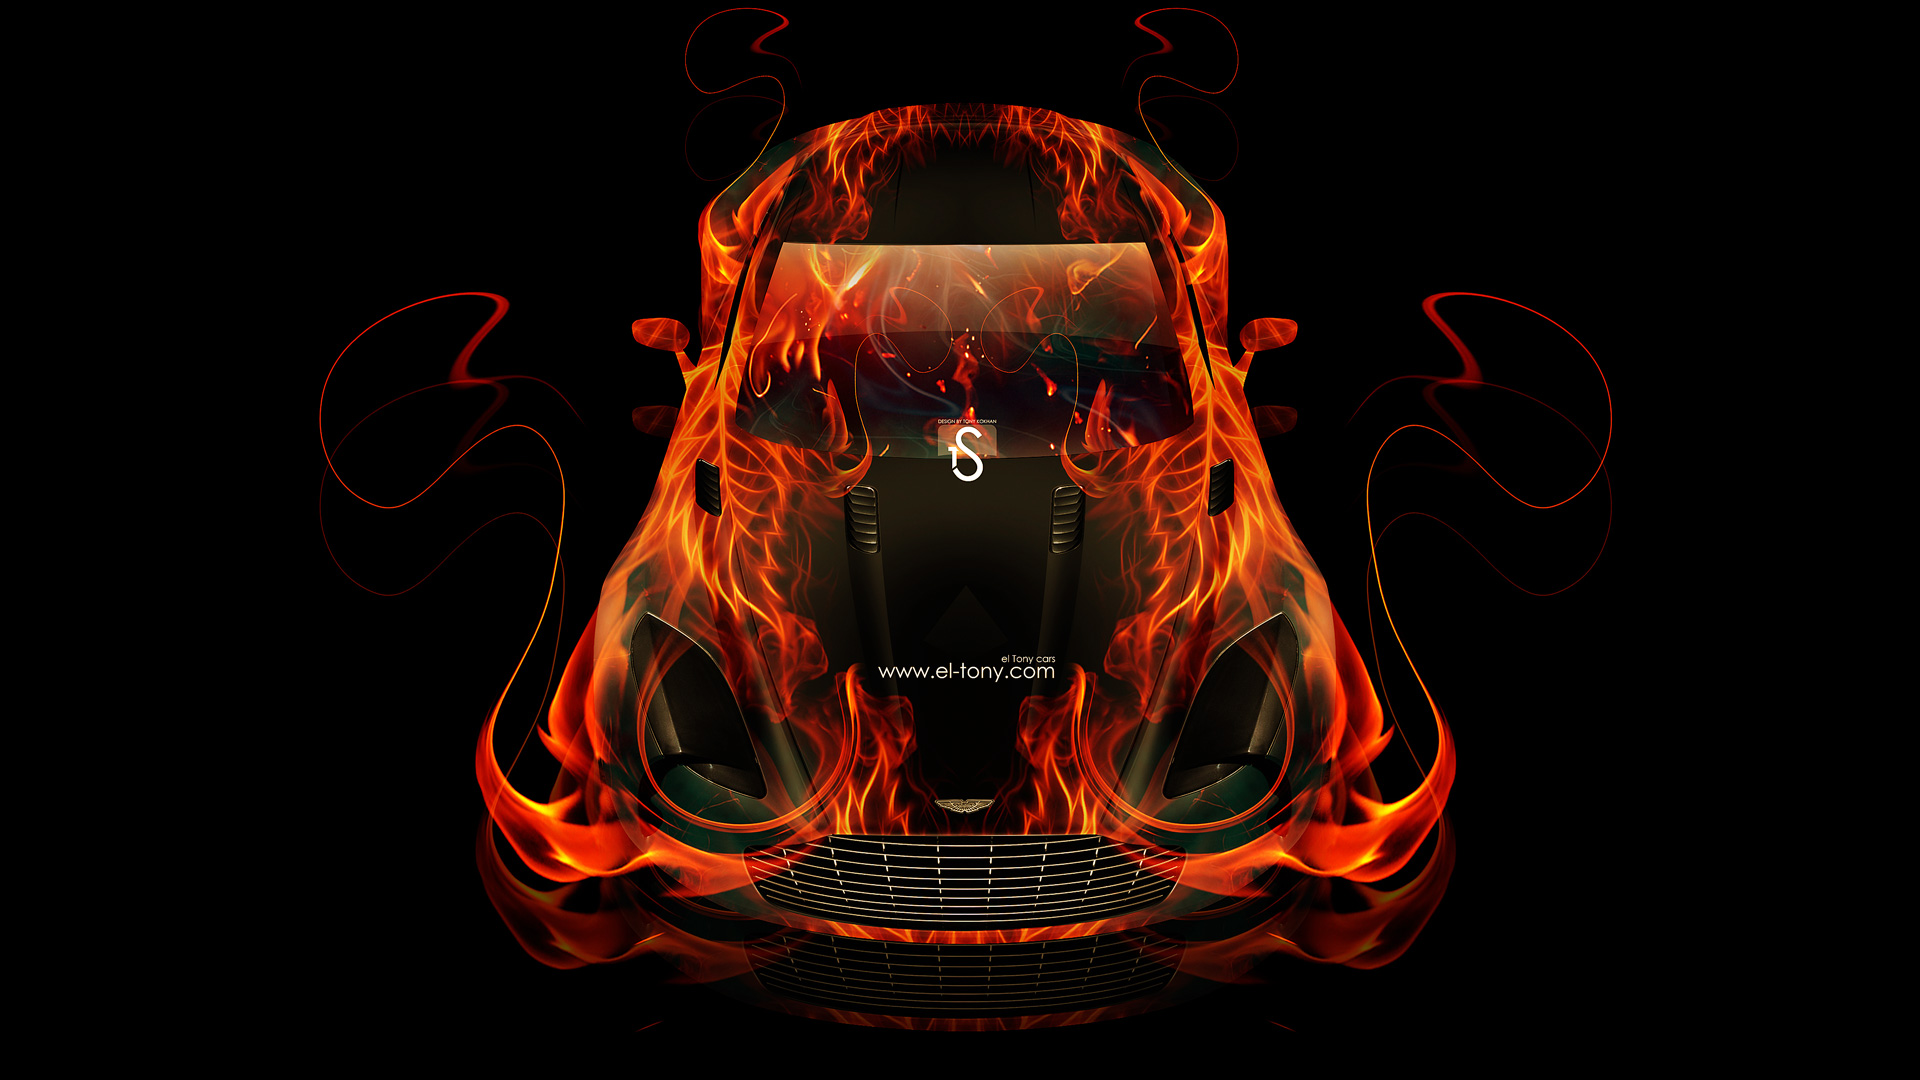 Aston-Martin-One77-Fire-Abstract-Car-2014-HD-Wallpapers-design-by-Tony-Kokhan-[www.el-tony.com]